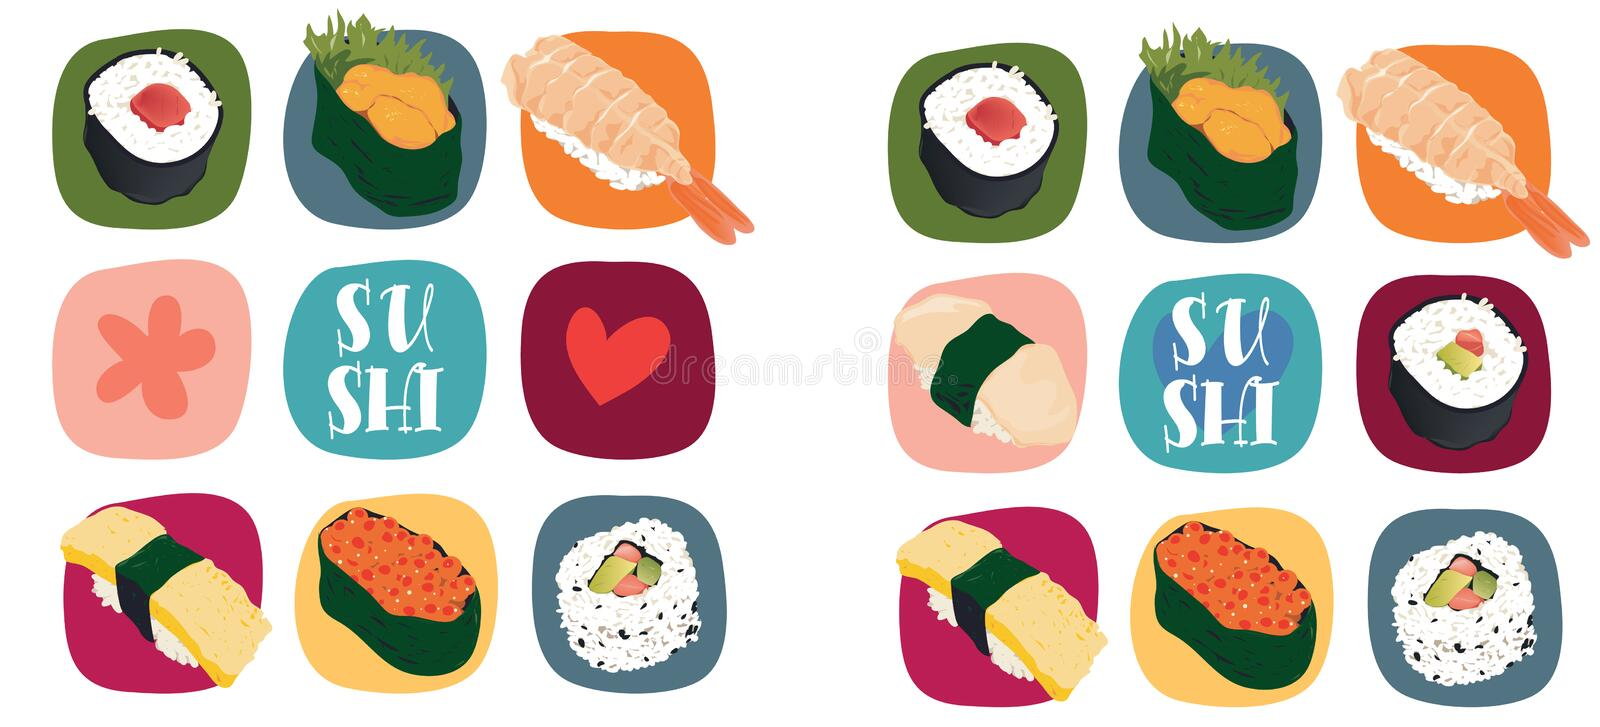 Sushi love. Illustration of various types of sushi